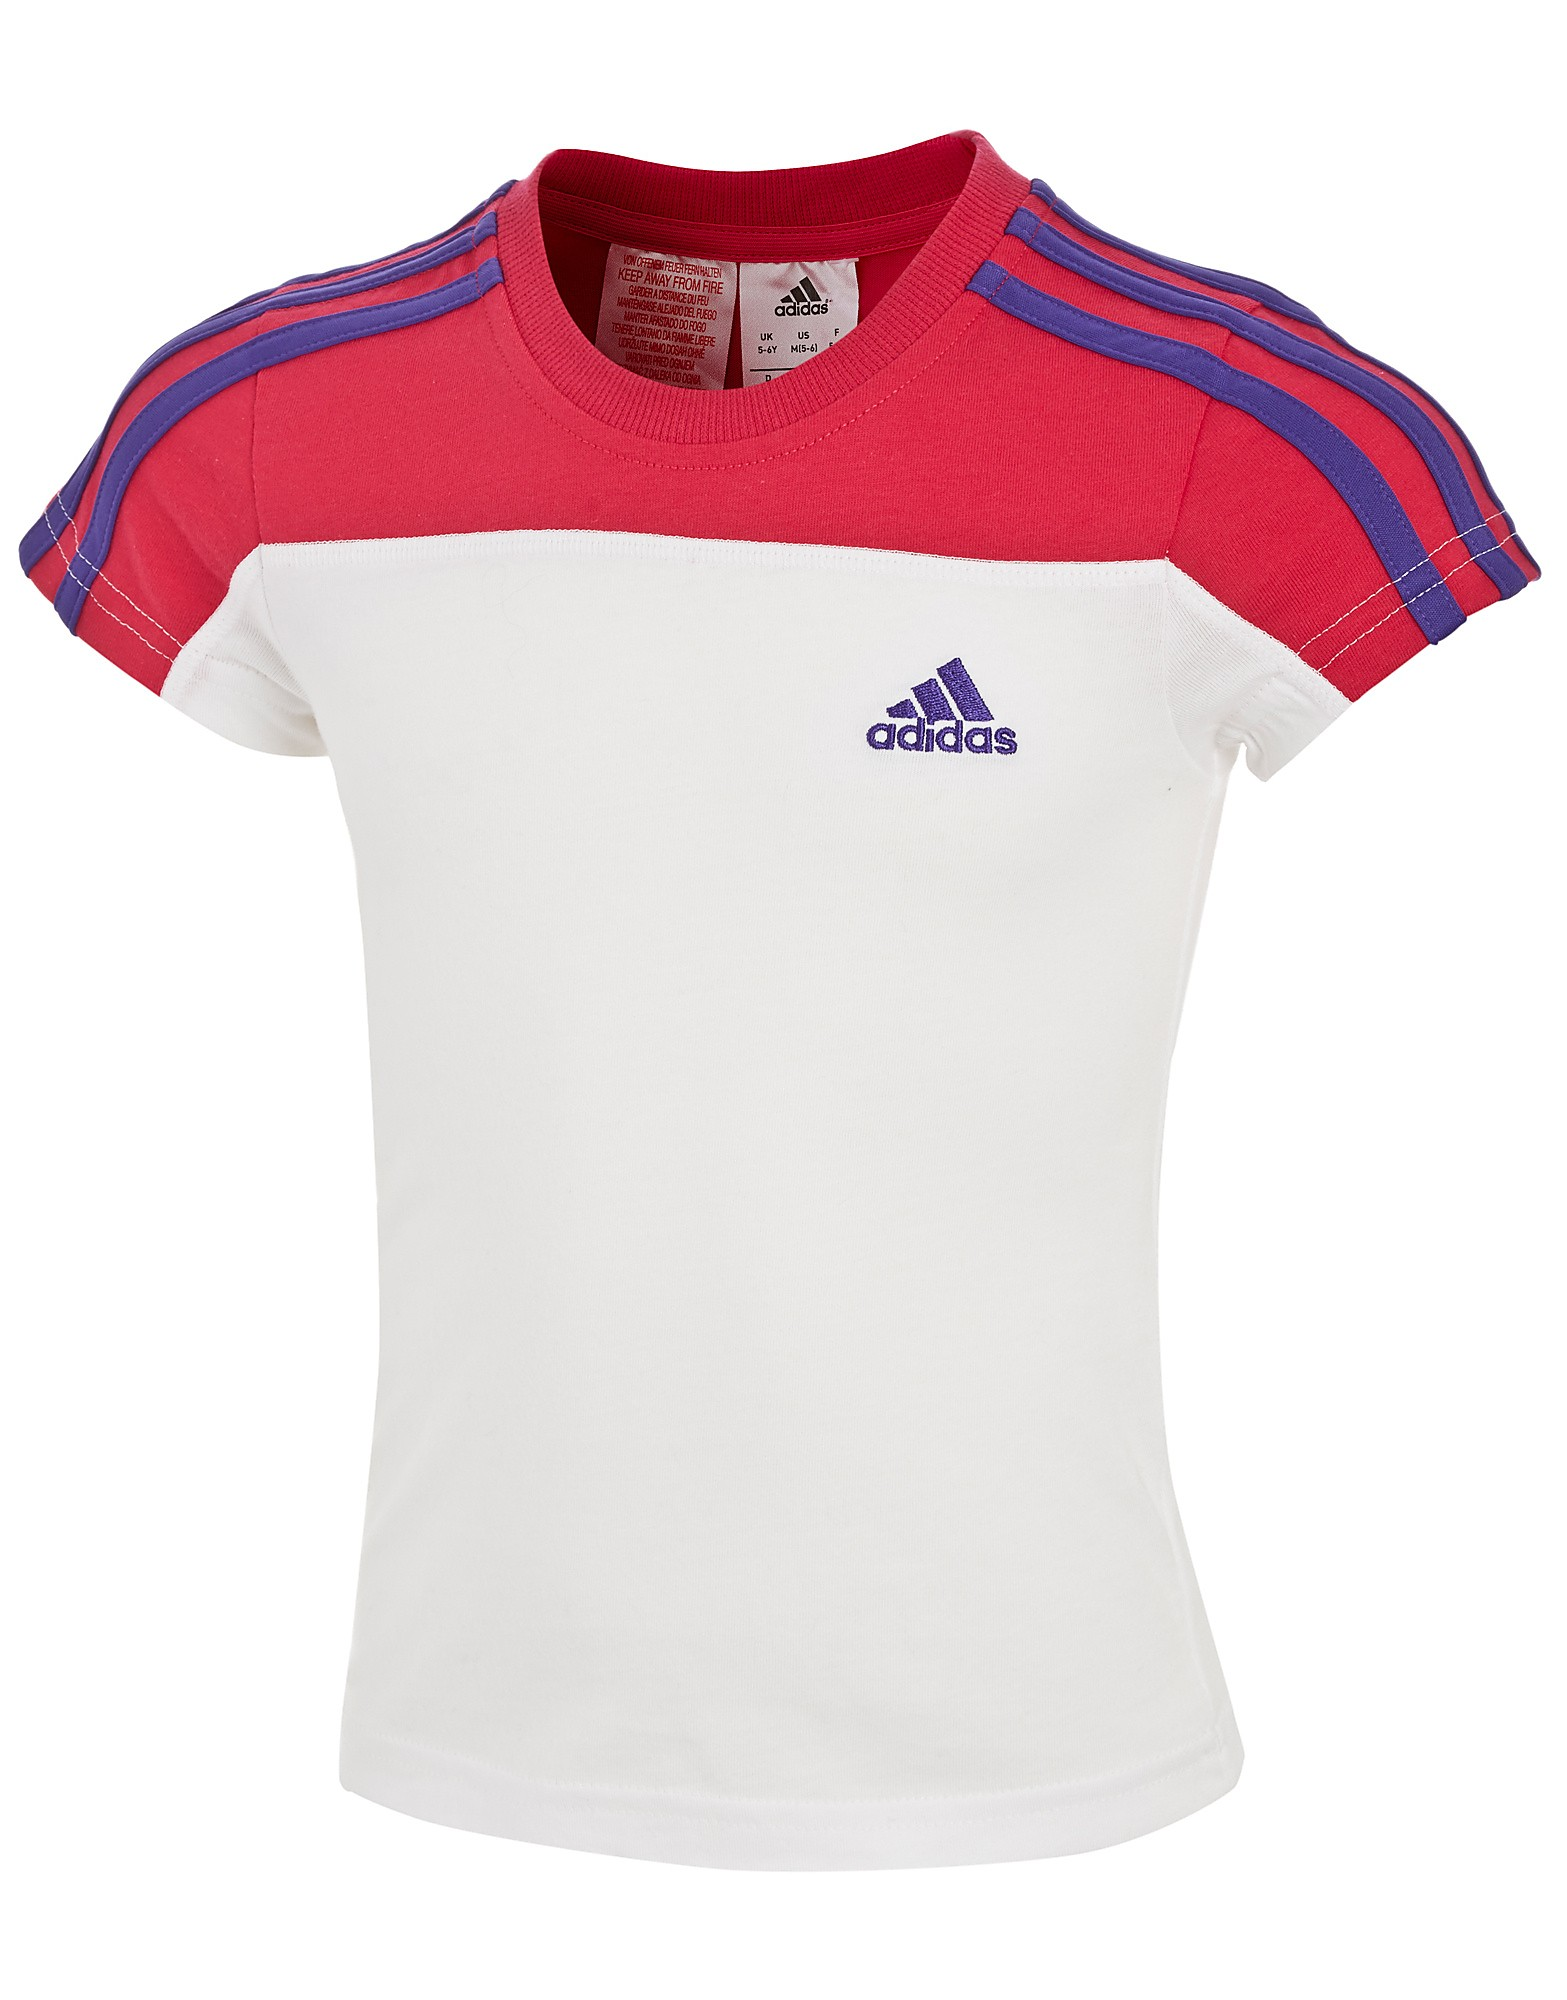 Adidas Girls Essential T-Shirt Childrens product image